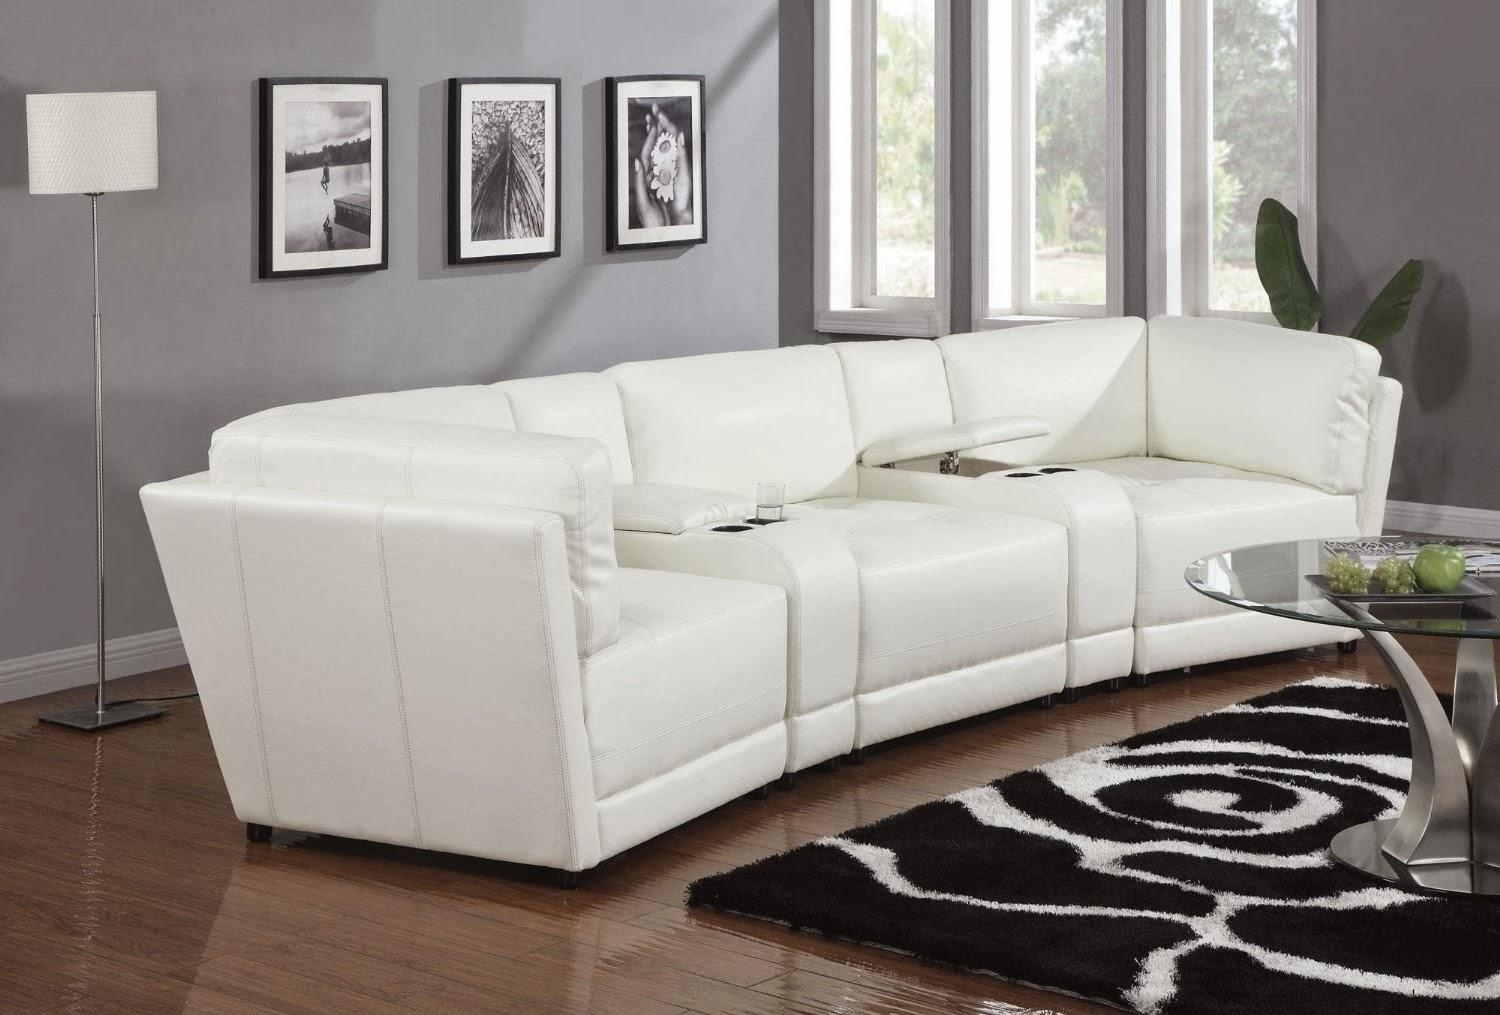 Sofa Maryland Home Design Furniture Decorating Amazing Simple With For Sofa Maryland (View 7 of 20)